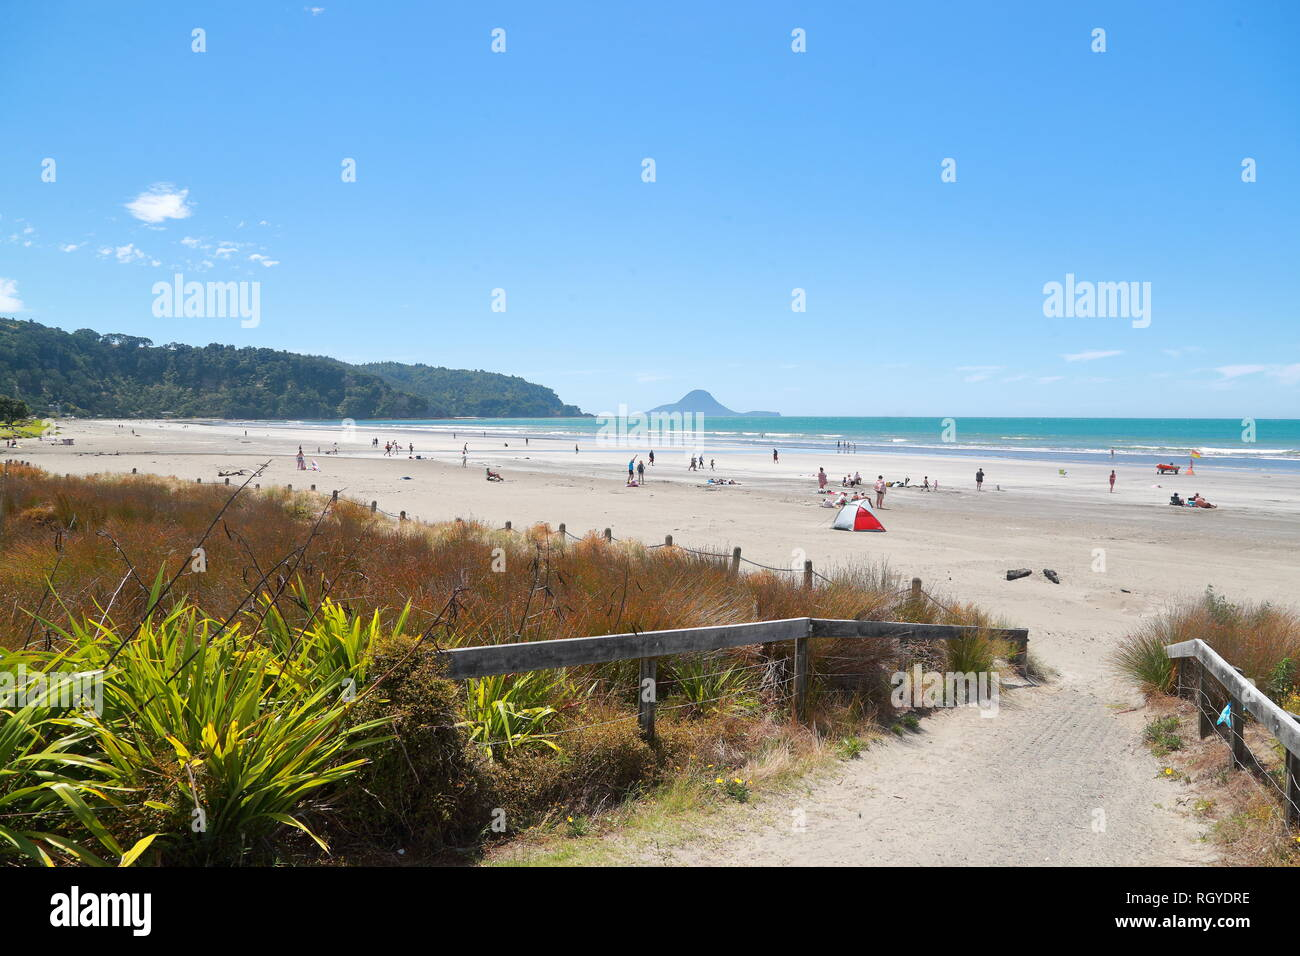 Swimmers and water sport fans enjoy themselves at Whakatane beach, New Zealand - Stock Image